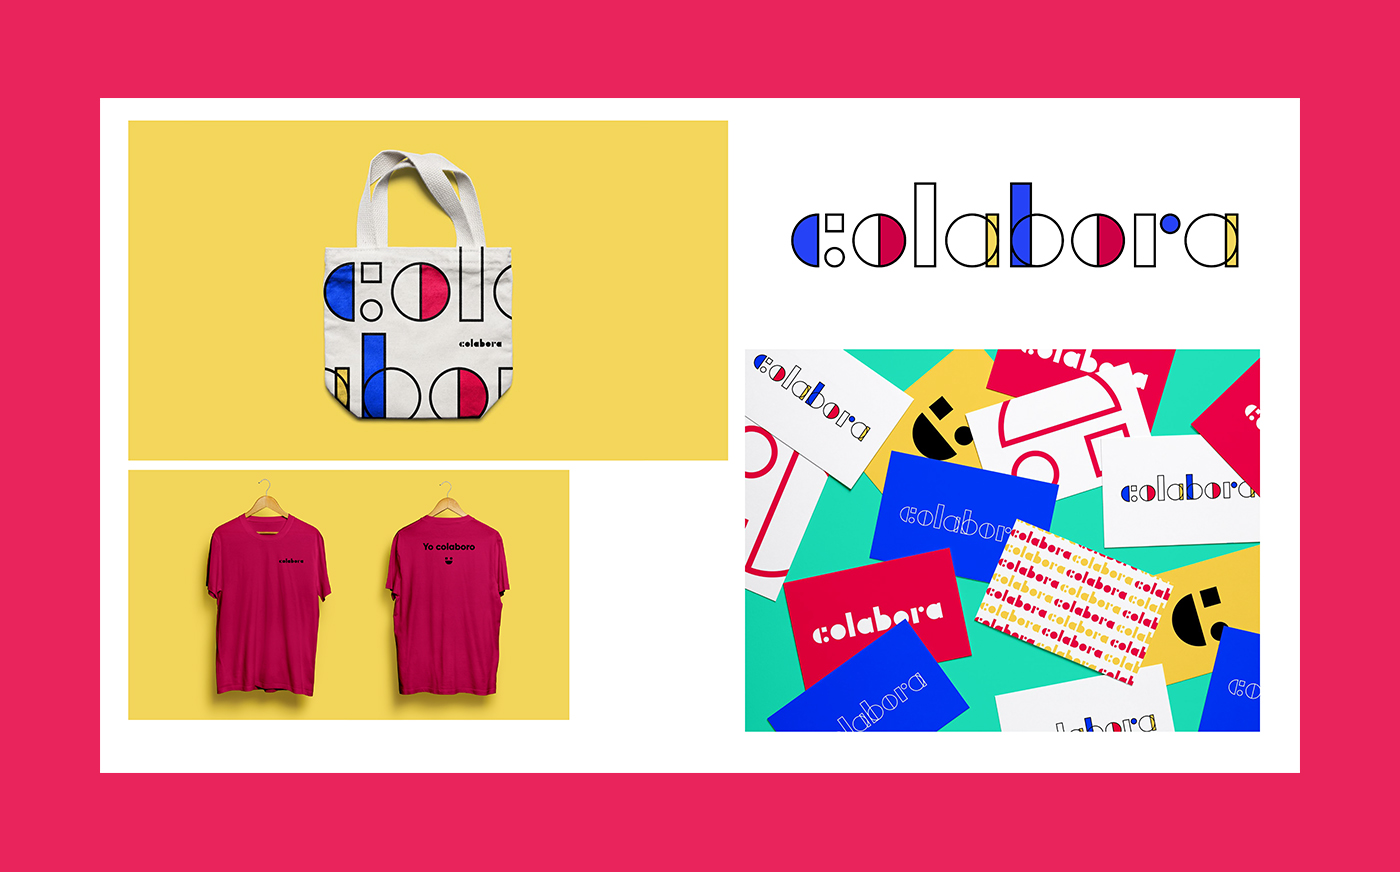 Colabora design project